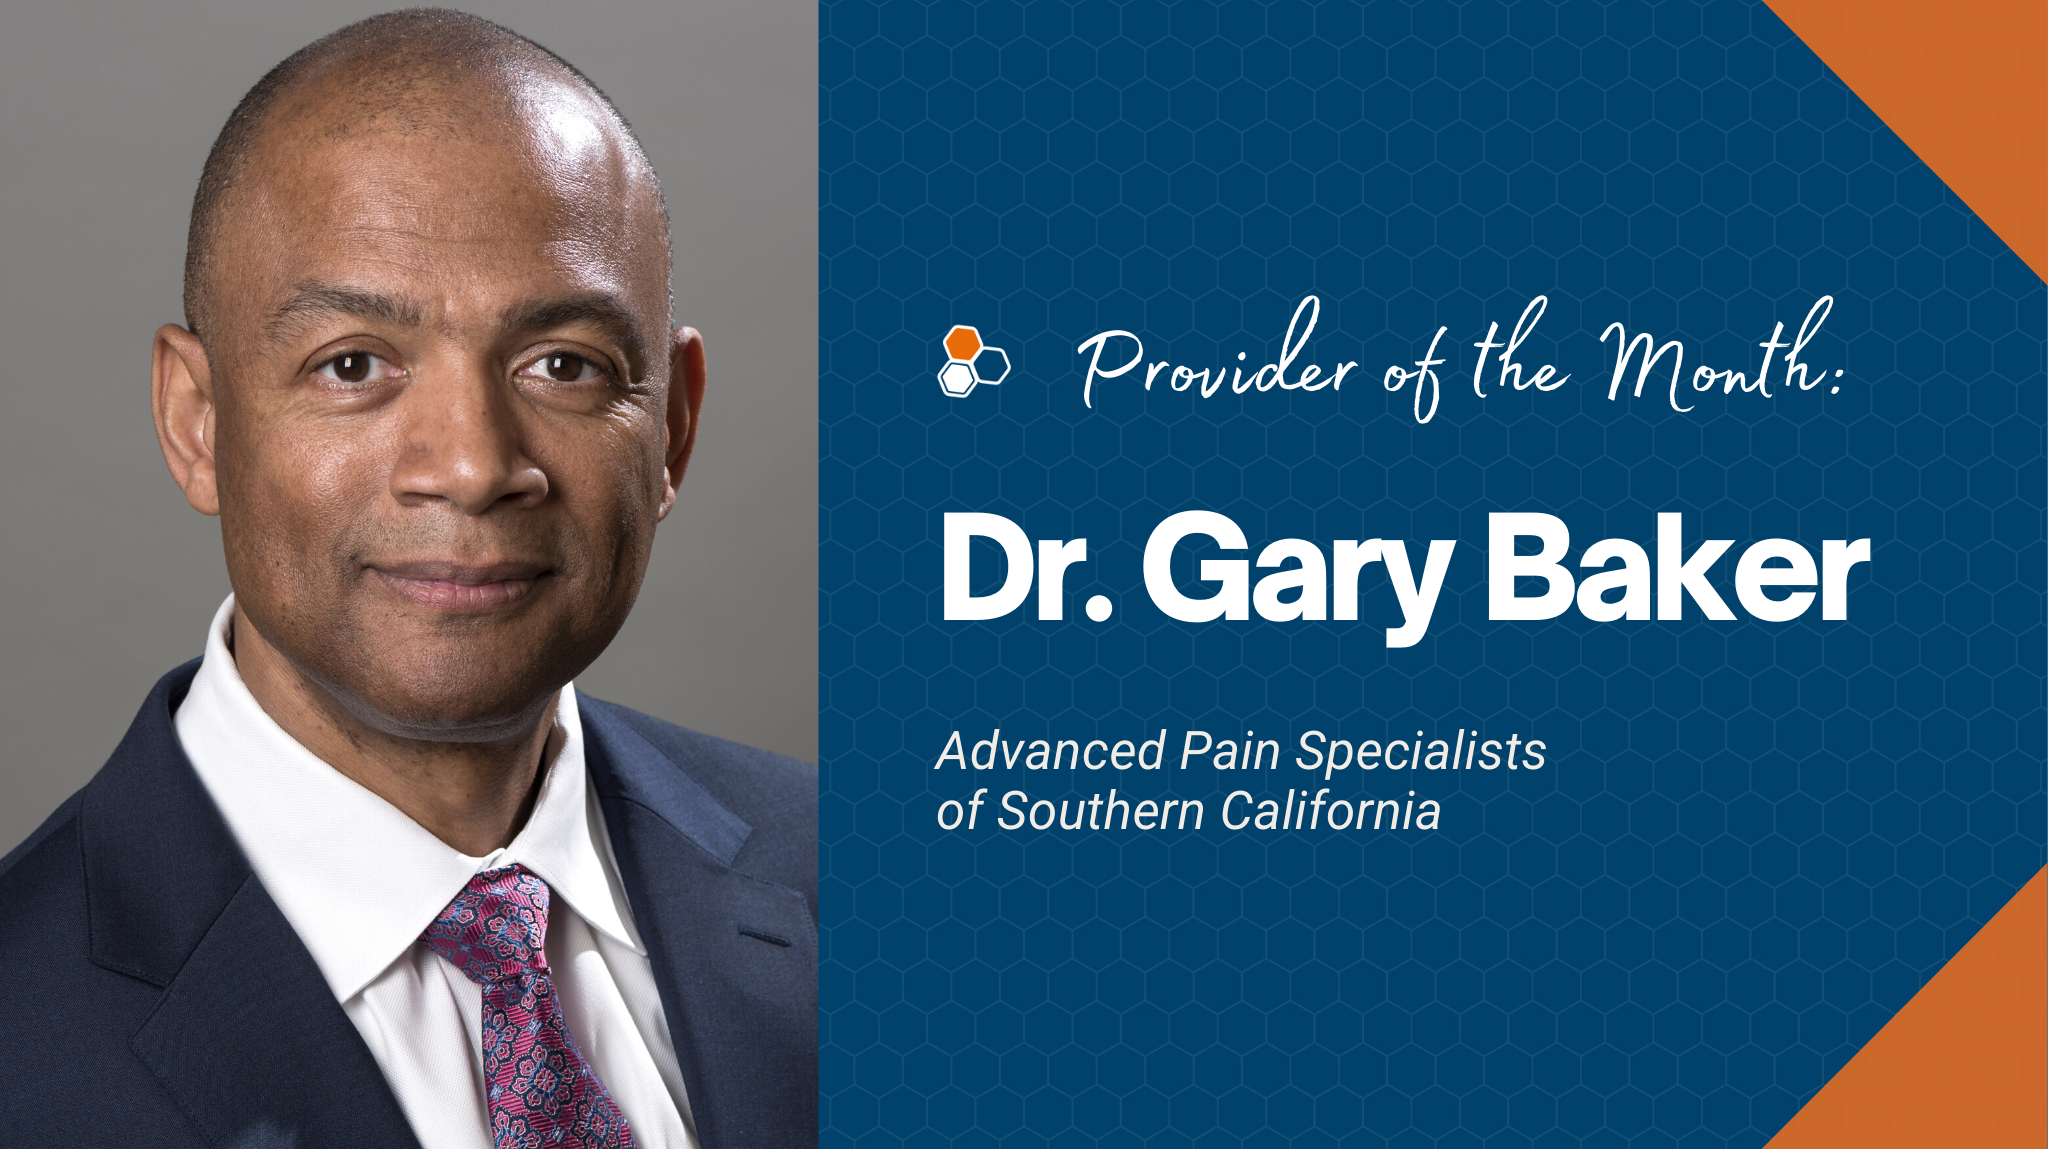 Pain Management Provider of the Month Dr. Gary Baker